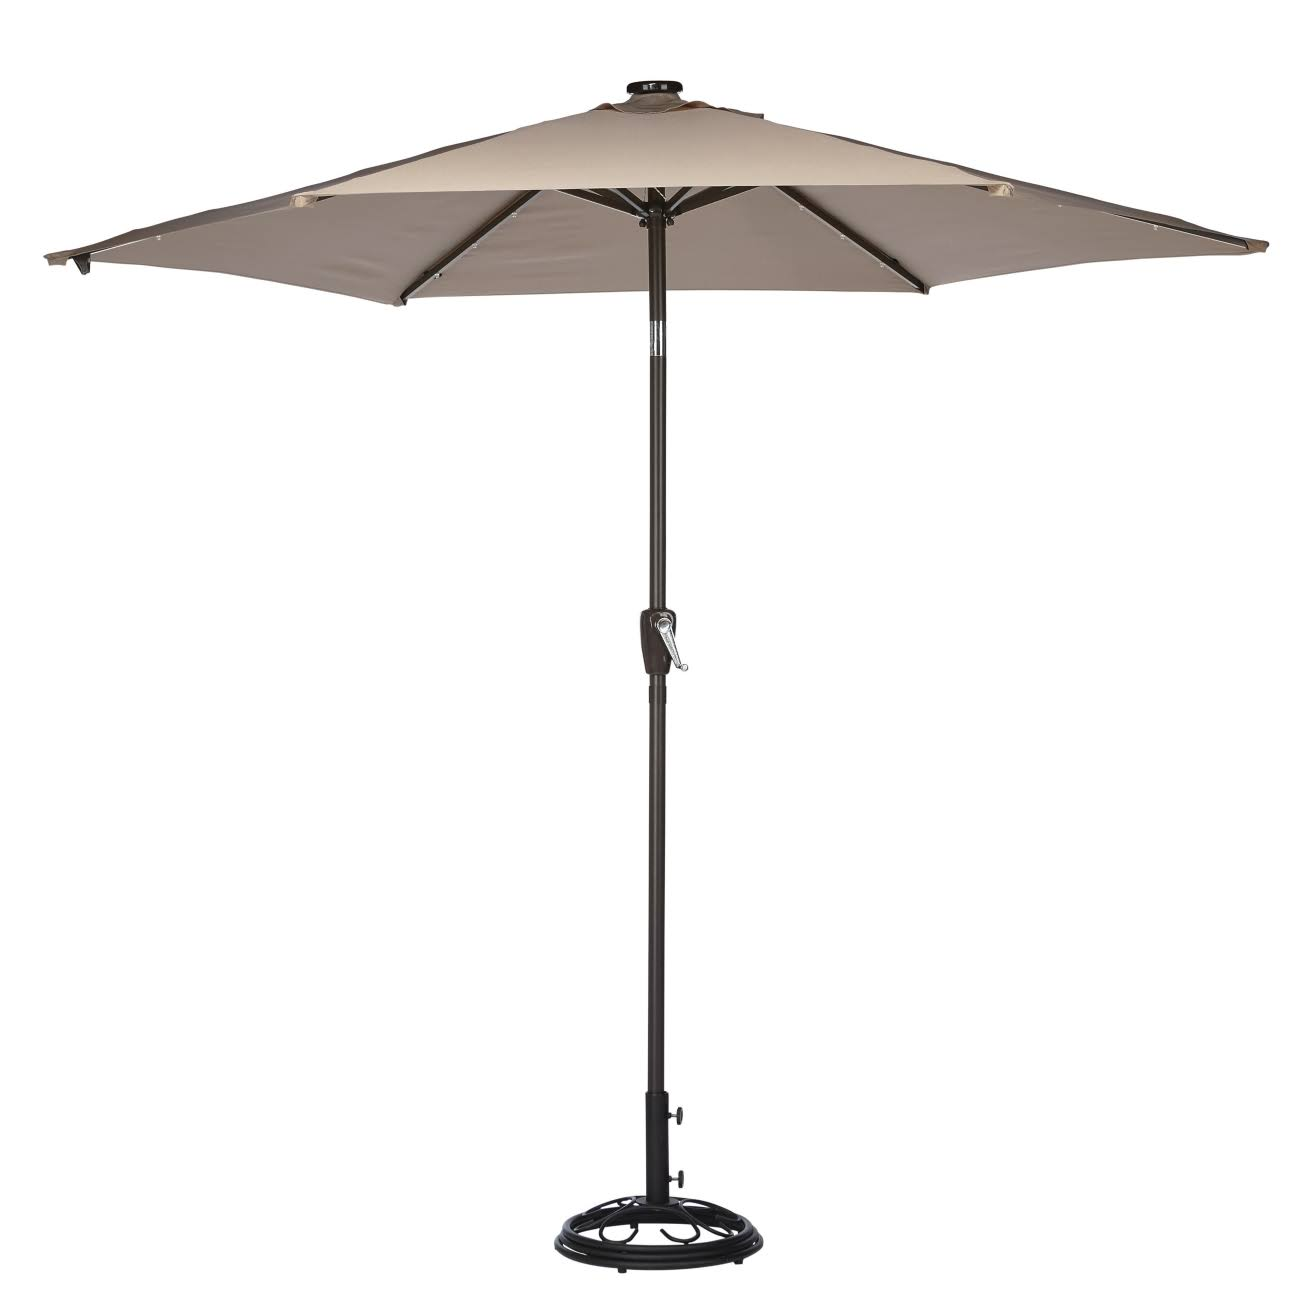 Living Accents Market Solar Umbrella - 9'